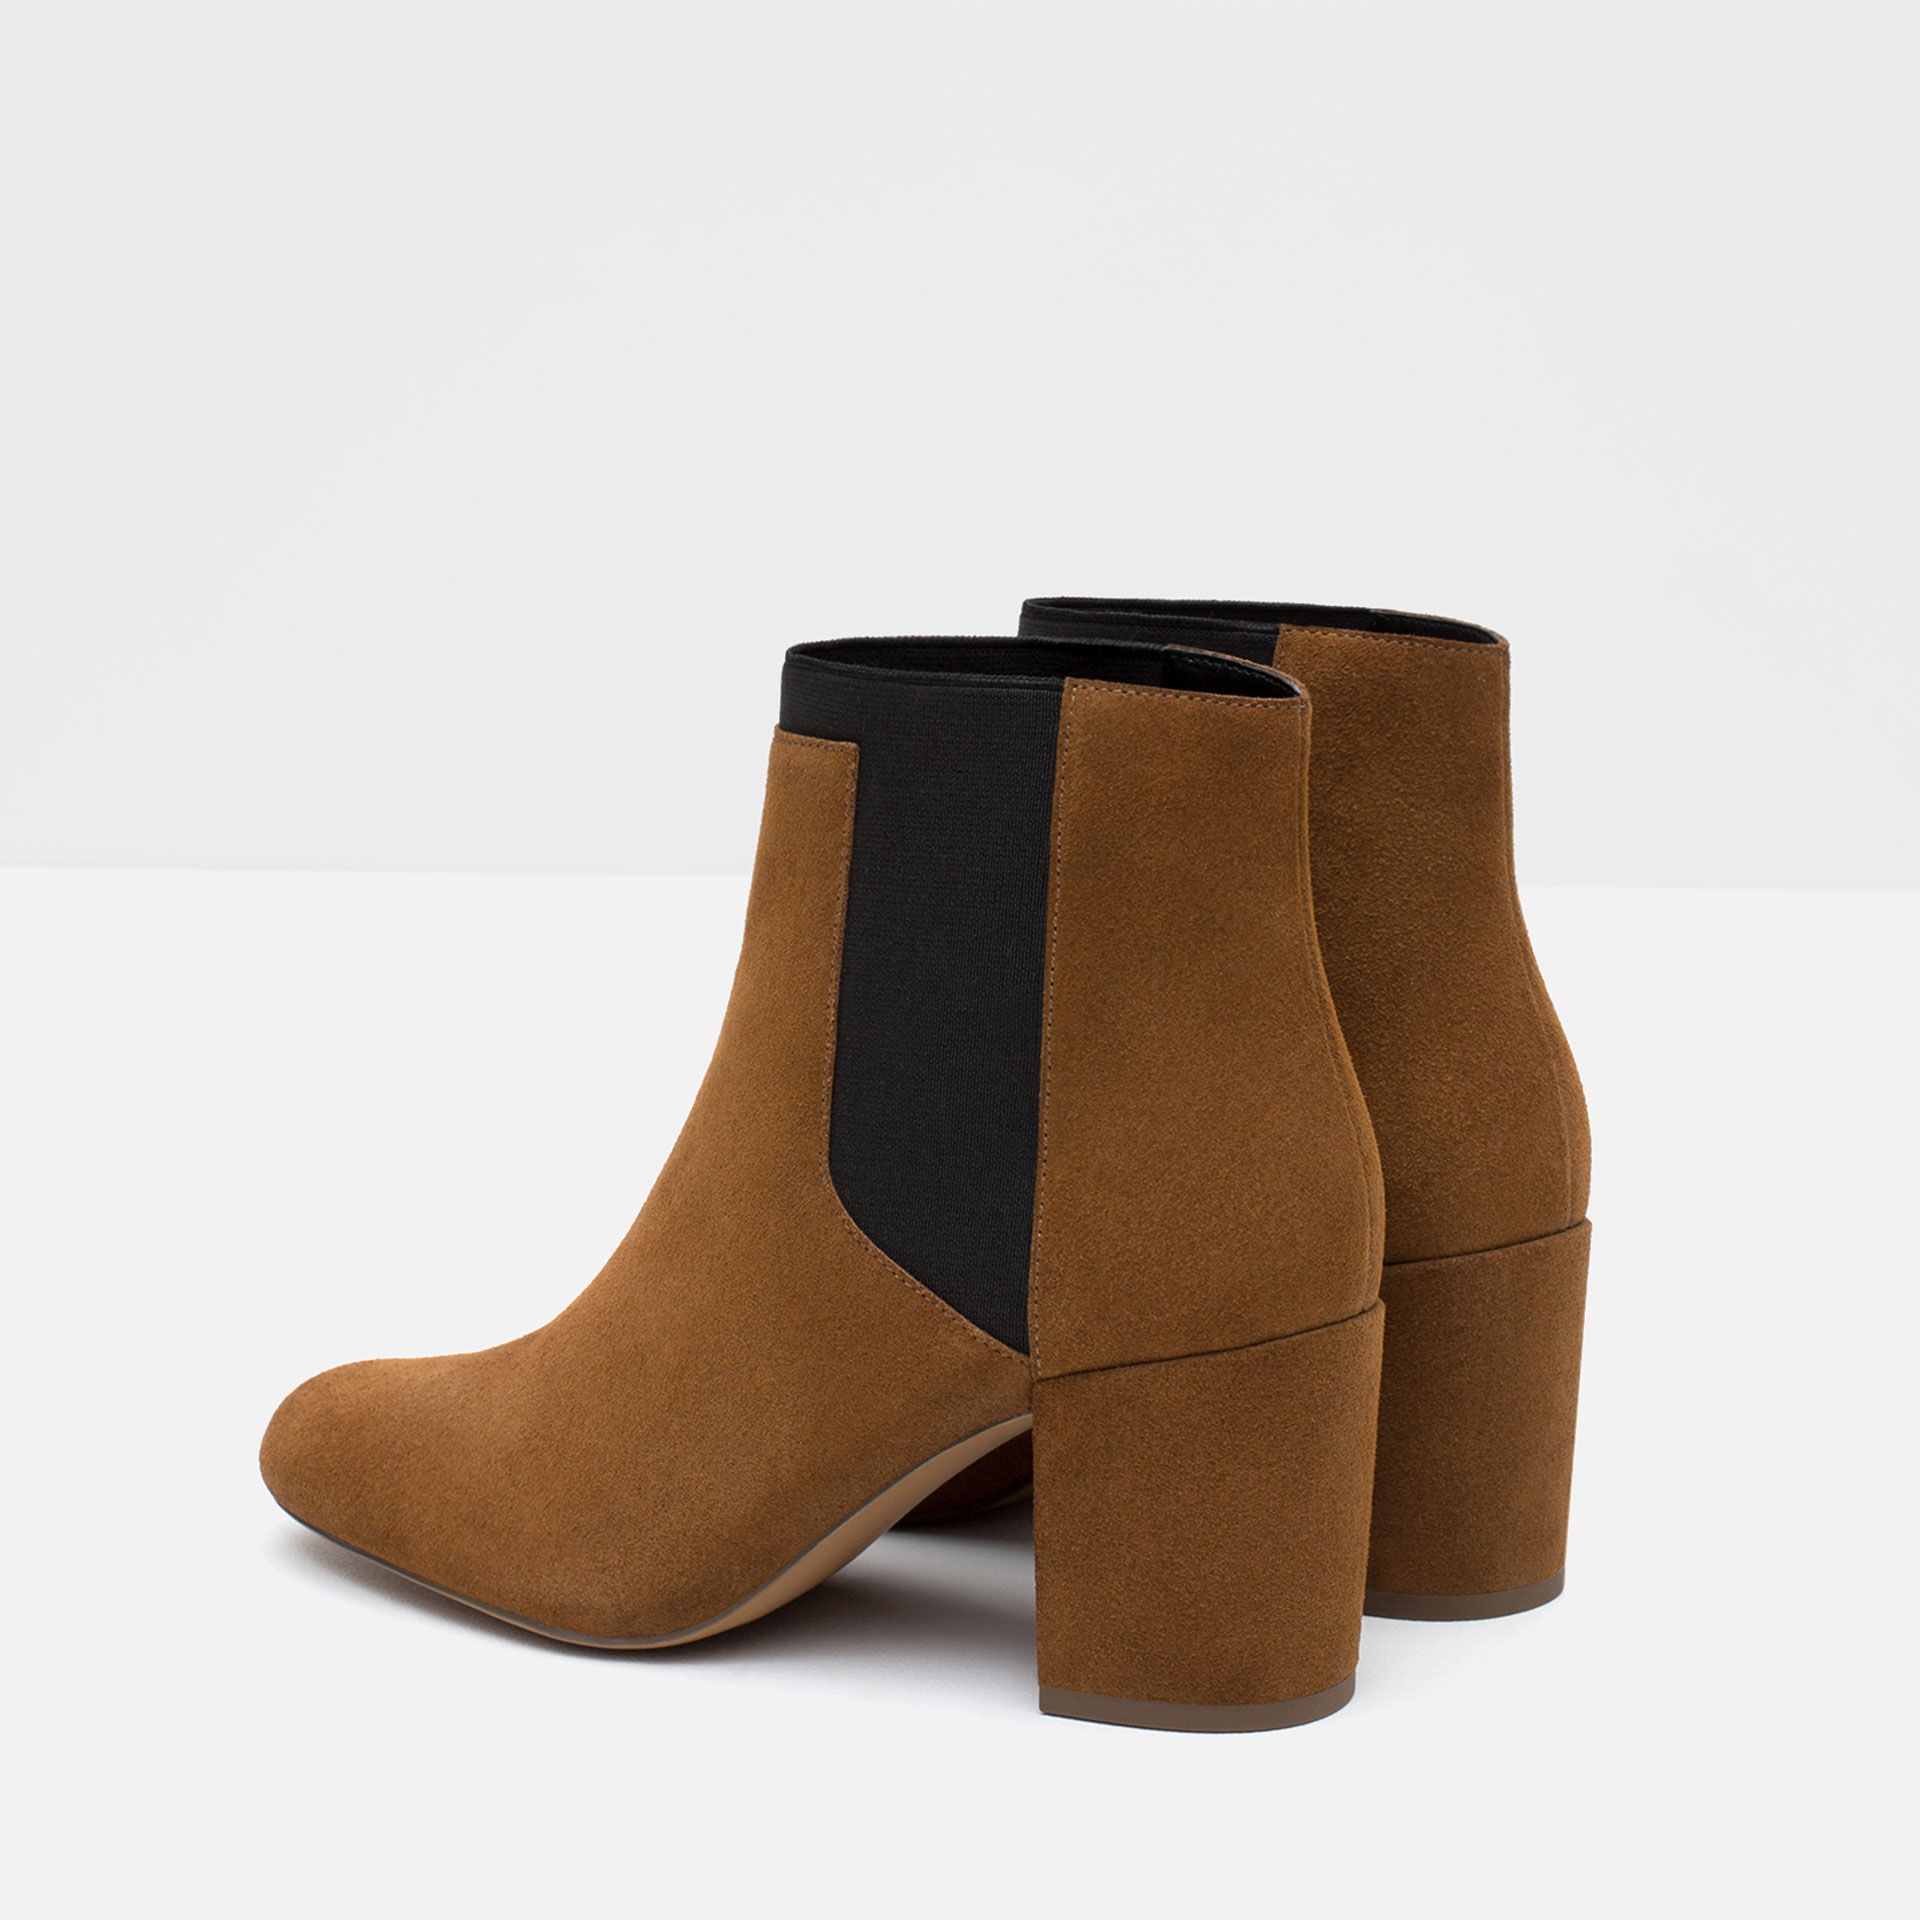 zara elasticated high heel leather ankle boots in brown lyst